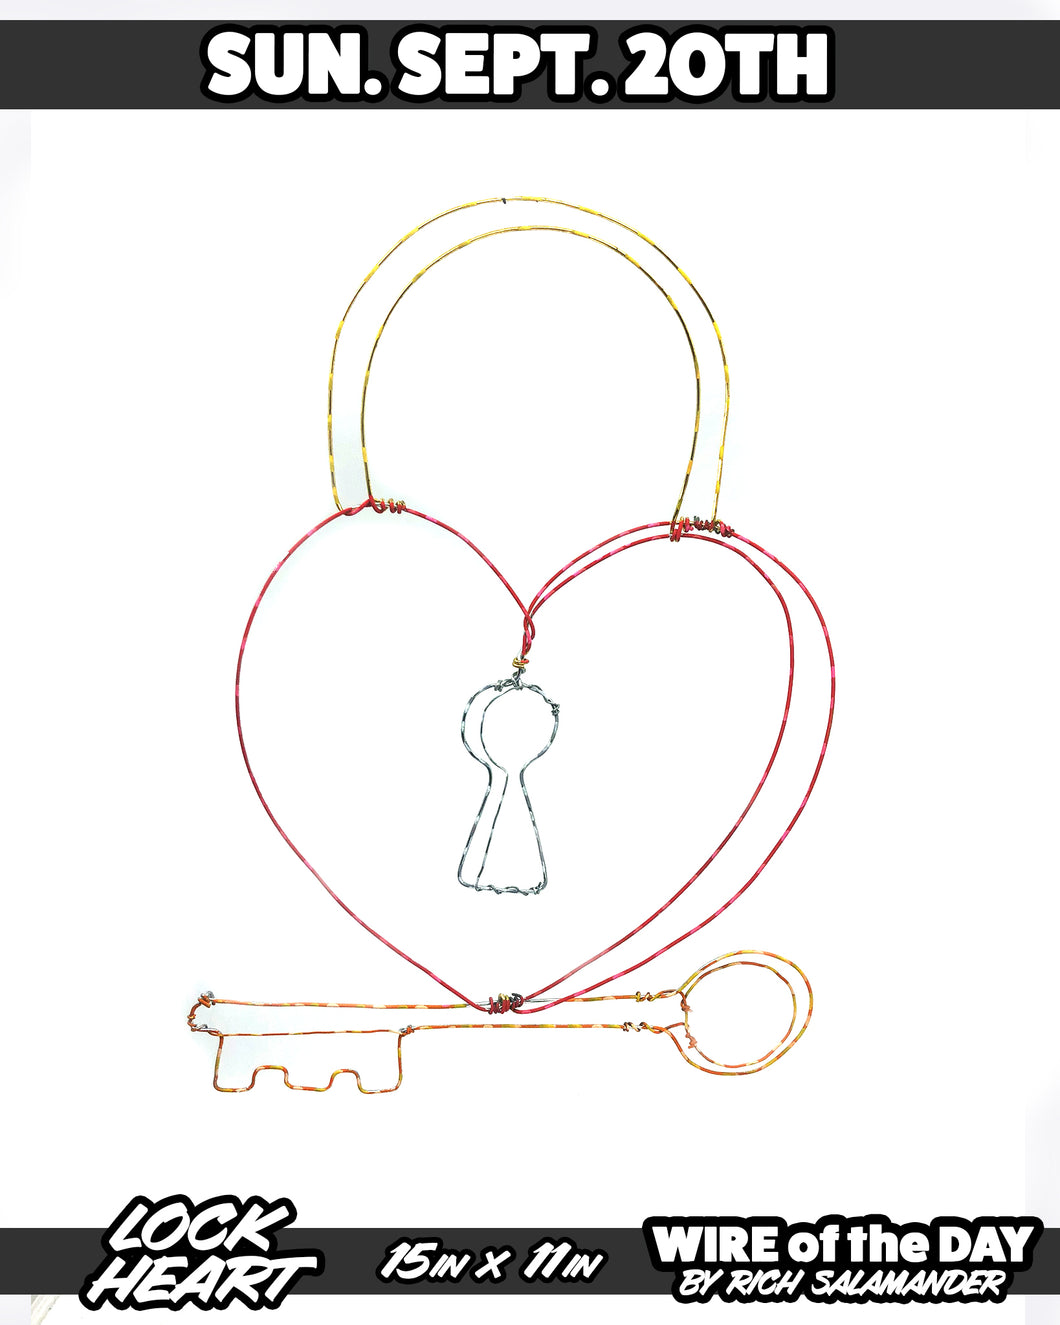 WIRE of the DAY LOCK HEART